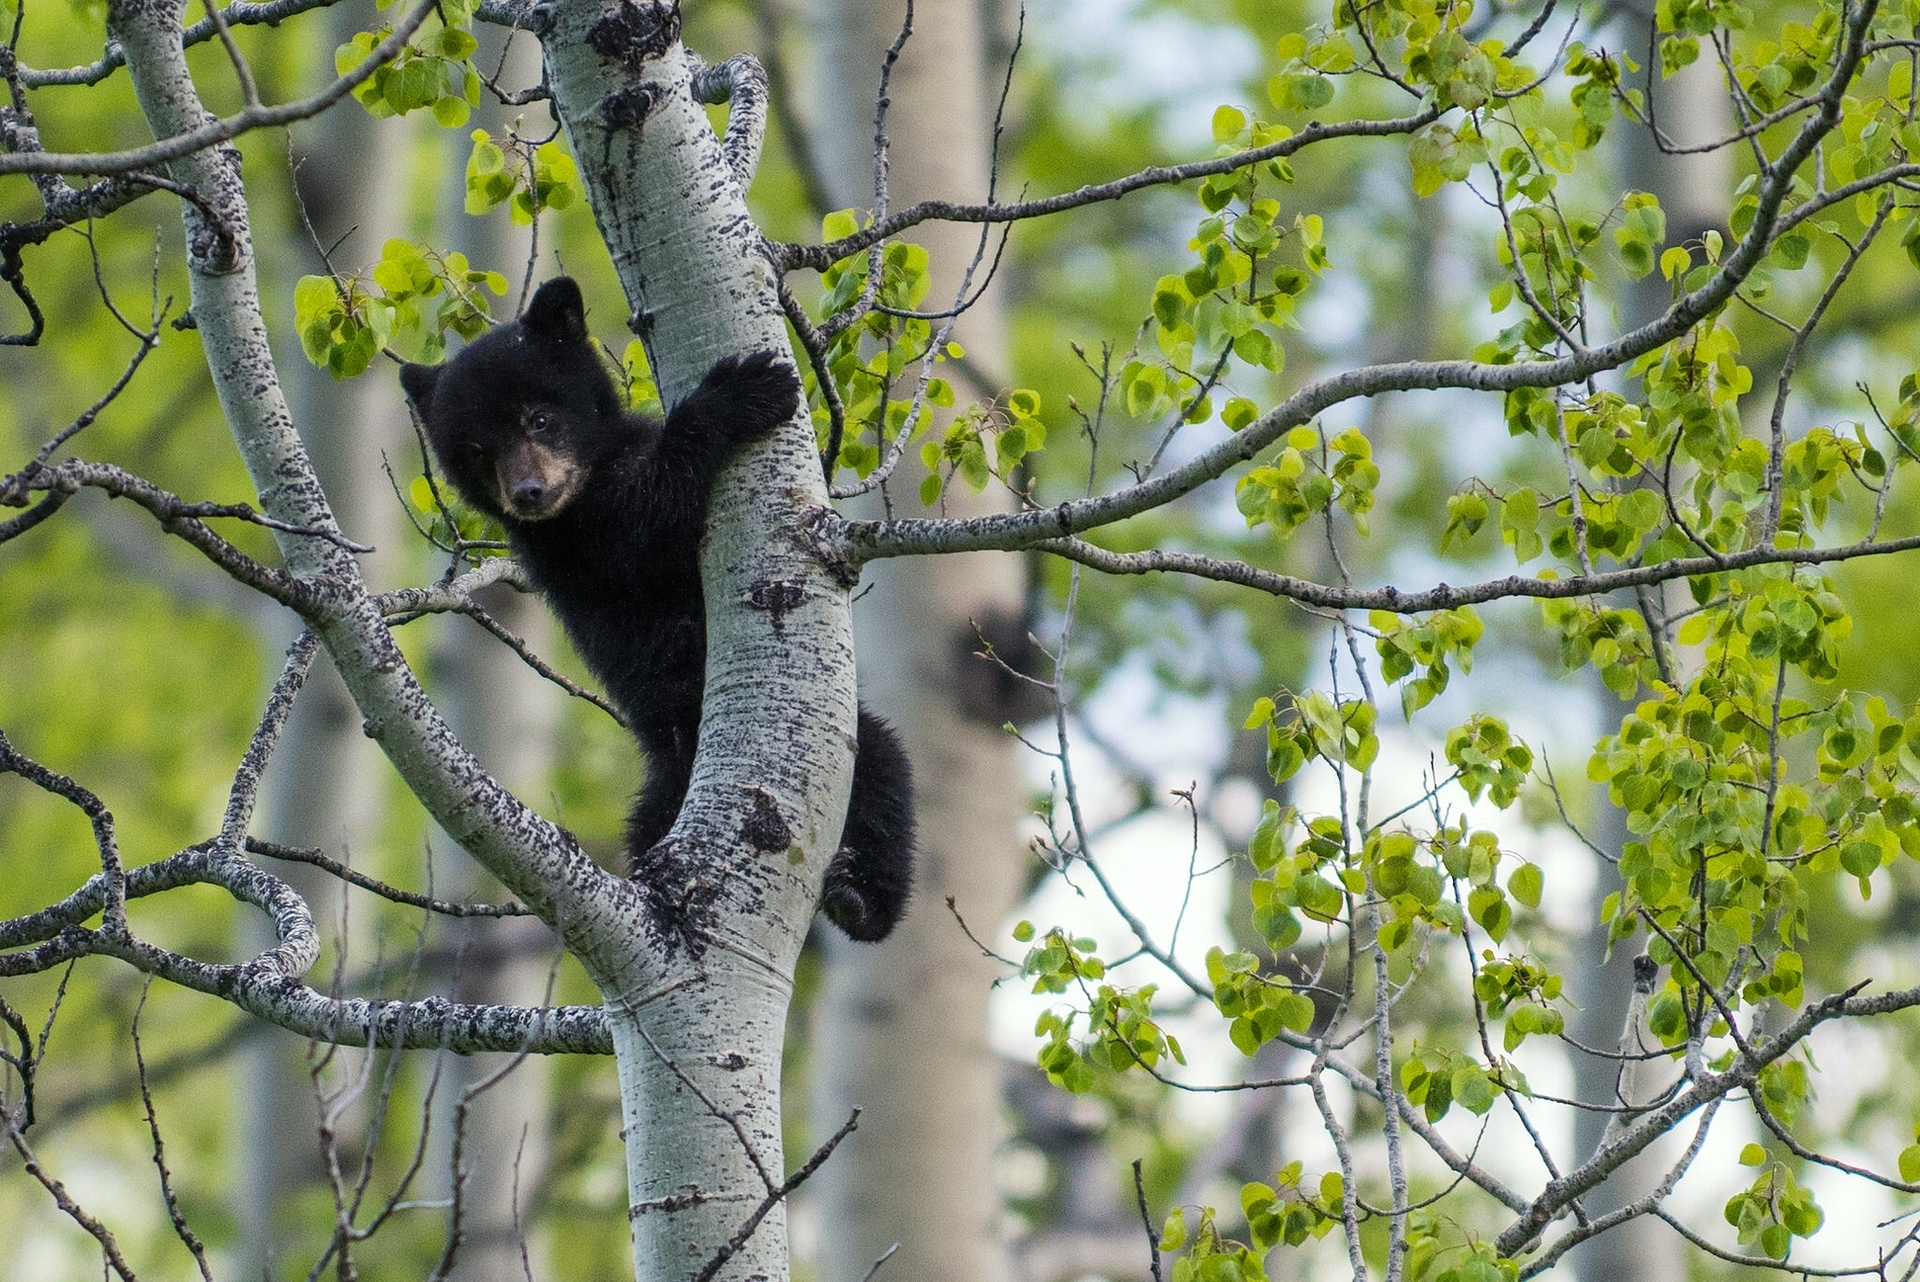 bear branch big and beautiful singles 55 houses in bear branch from $115,000 find the best offers for properties in bear branch property with loads of wildlife of deer, turkey, bear, coon, rabbits, squirrel and more7 gas.